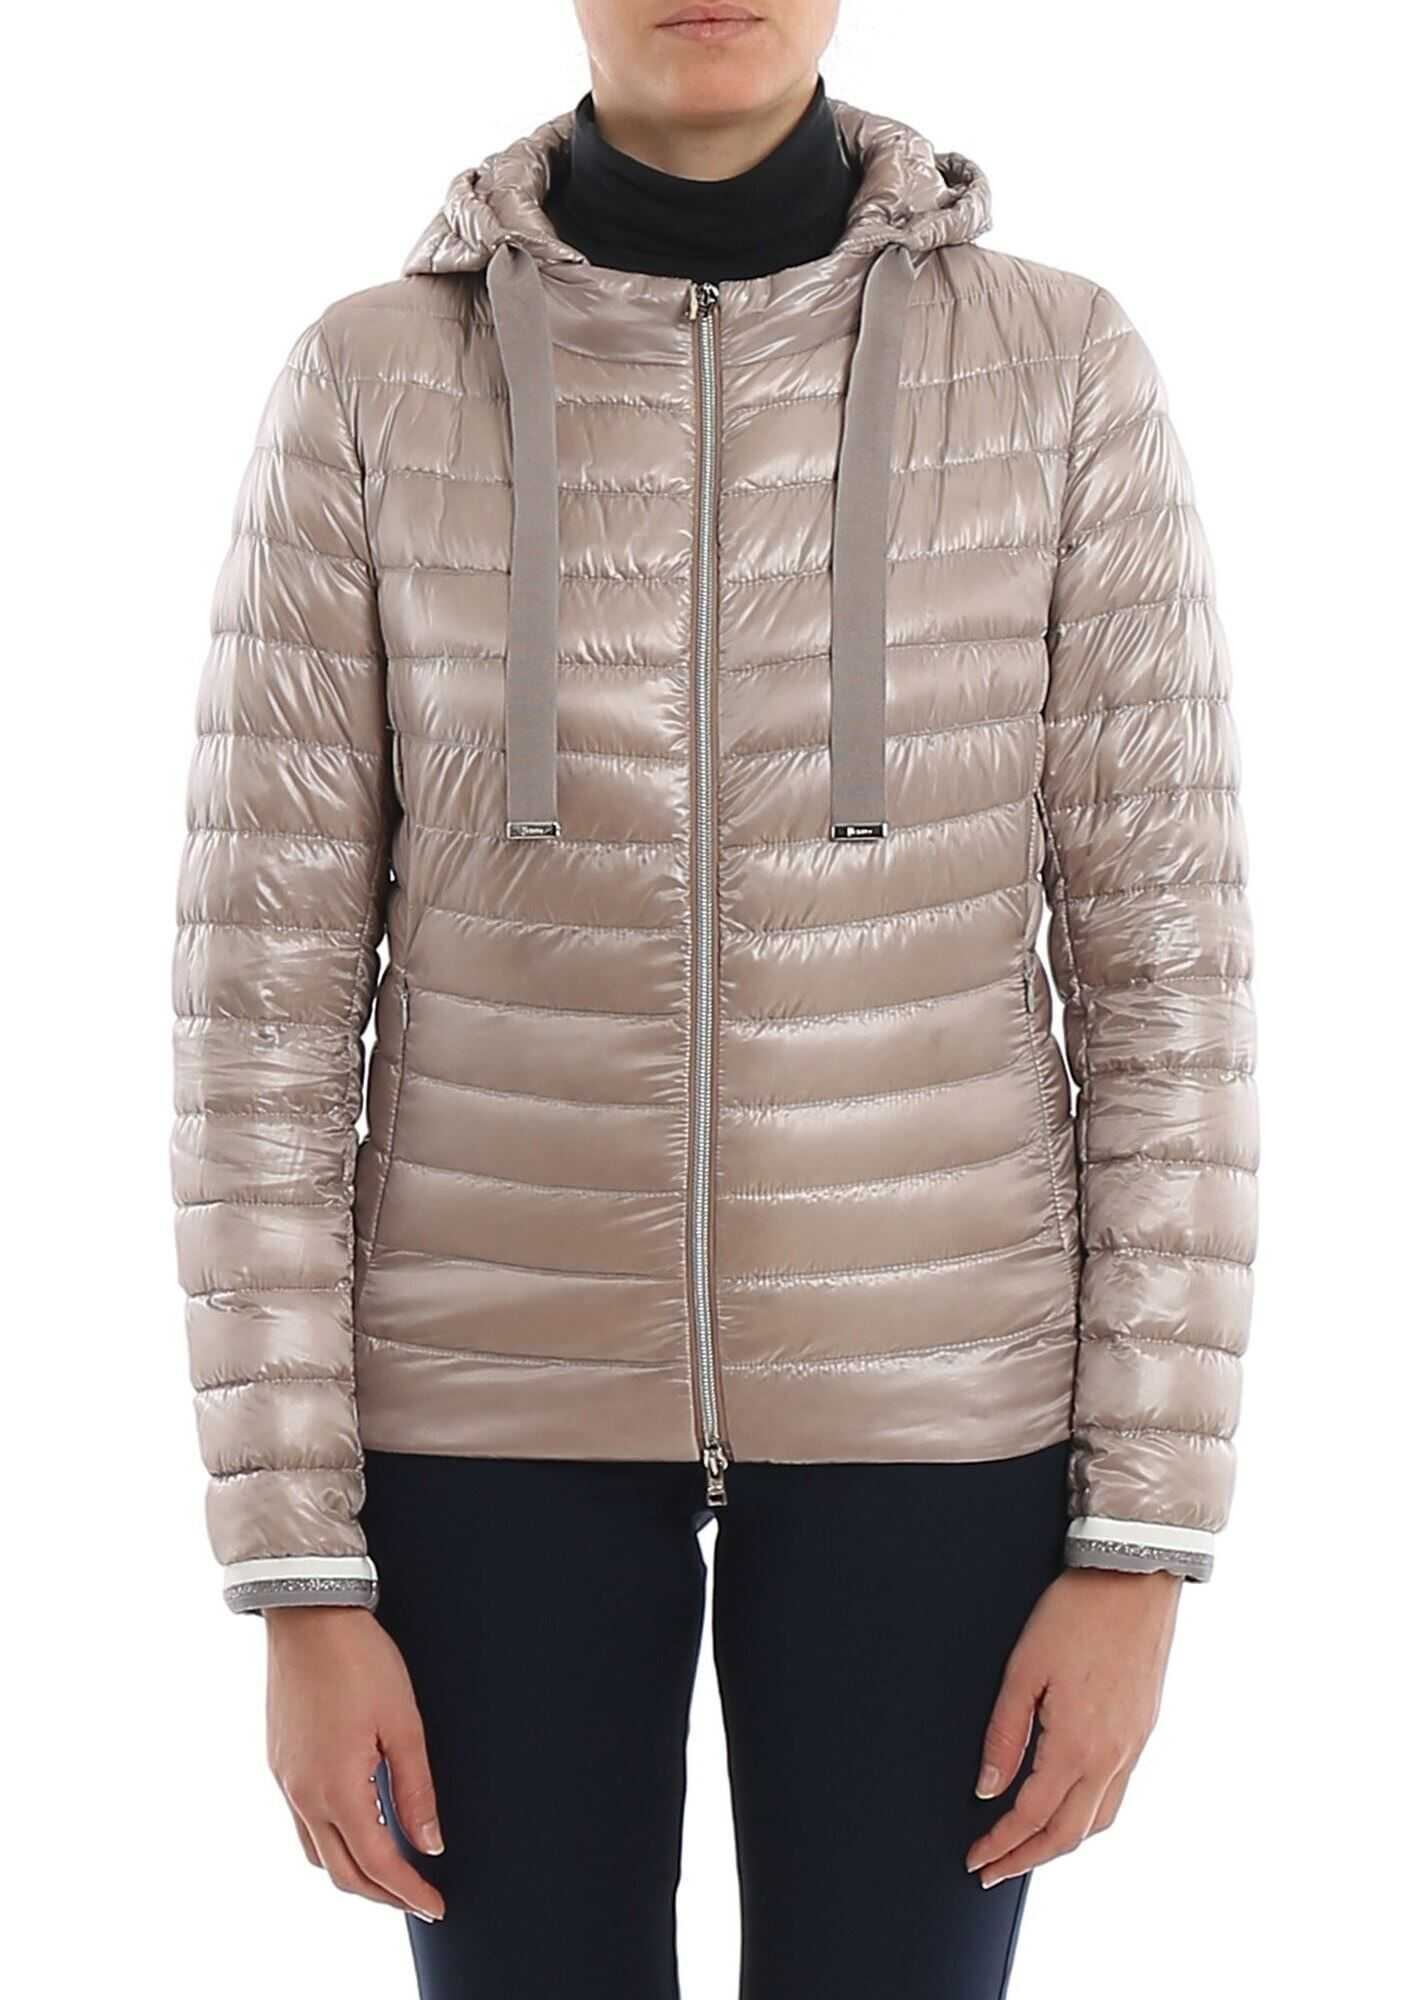 Herno Lurex Details Down Jacket In Beige Beige